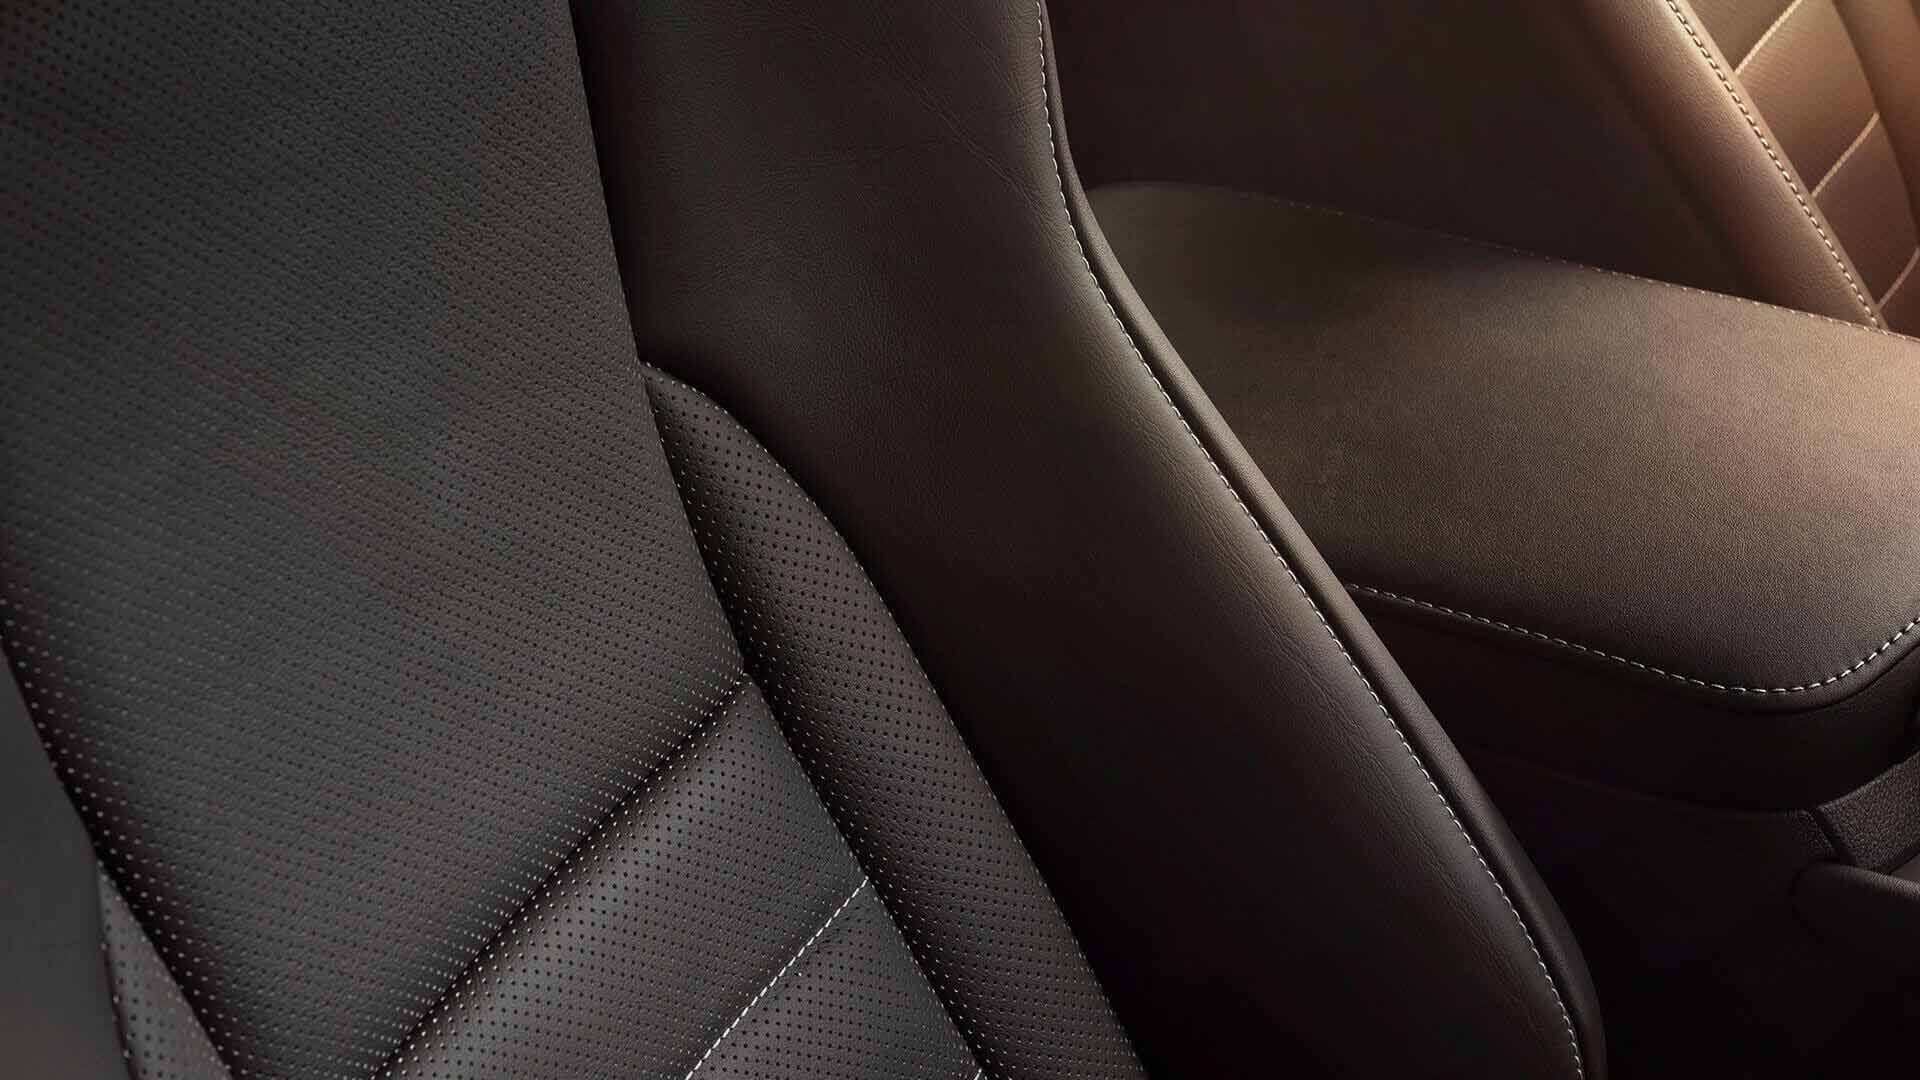 2018 lexus nx my18 gallery 018 interior